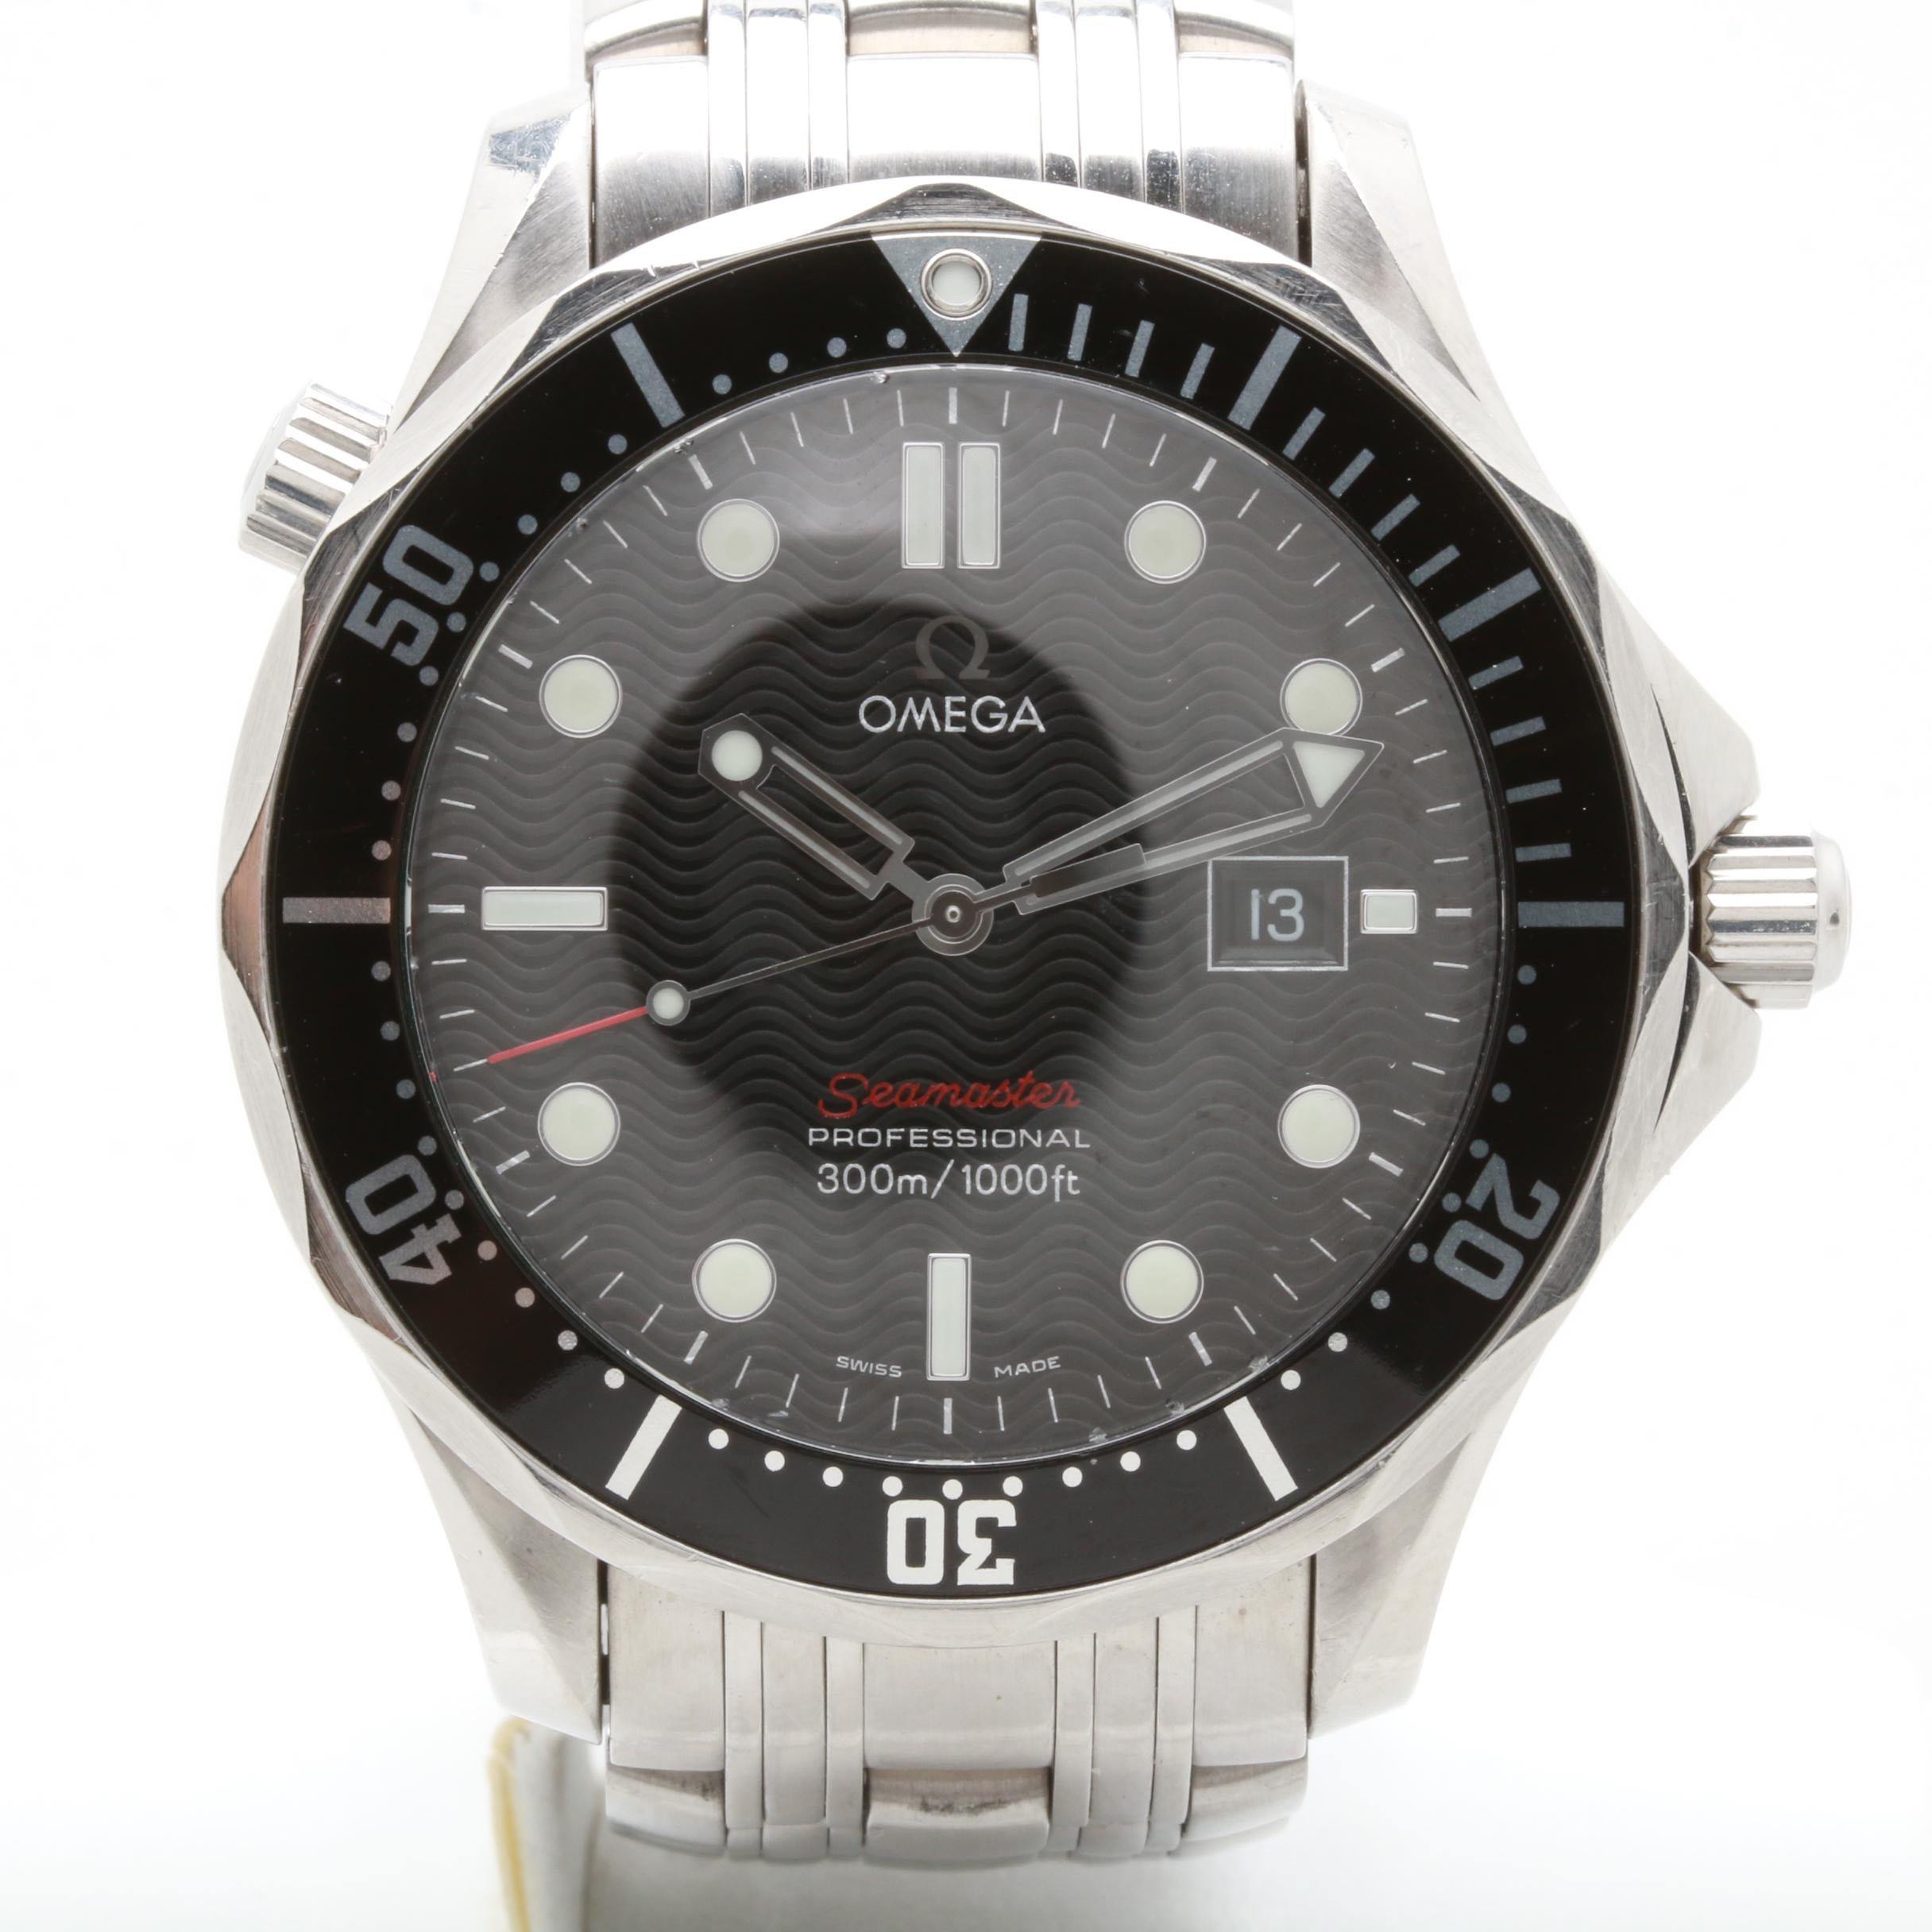 "Omega Seamaster Professional Full Size ""James Bond"" Wristwatch"